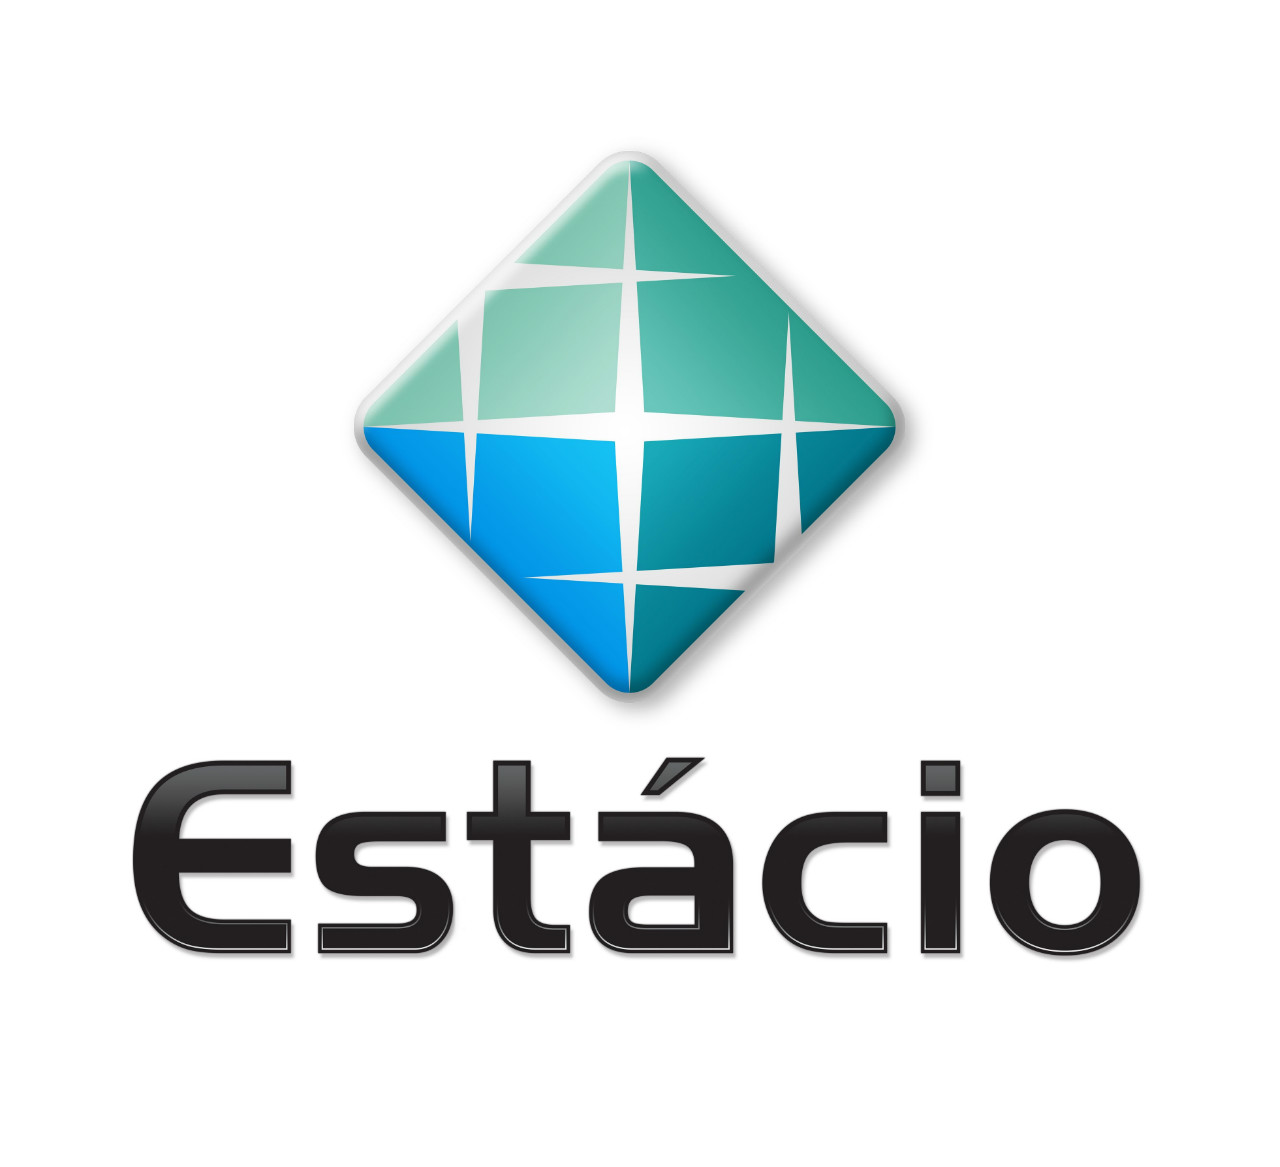 estacio-logo-faculdade-3